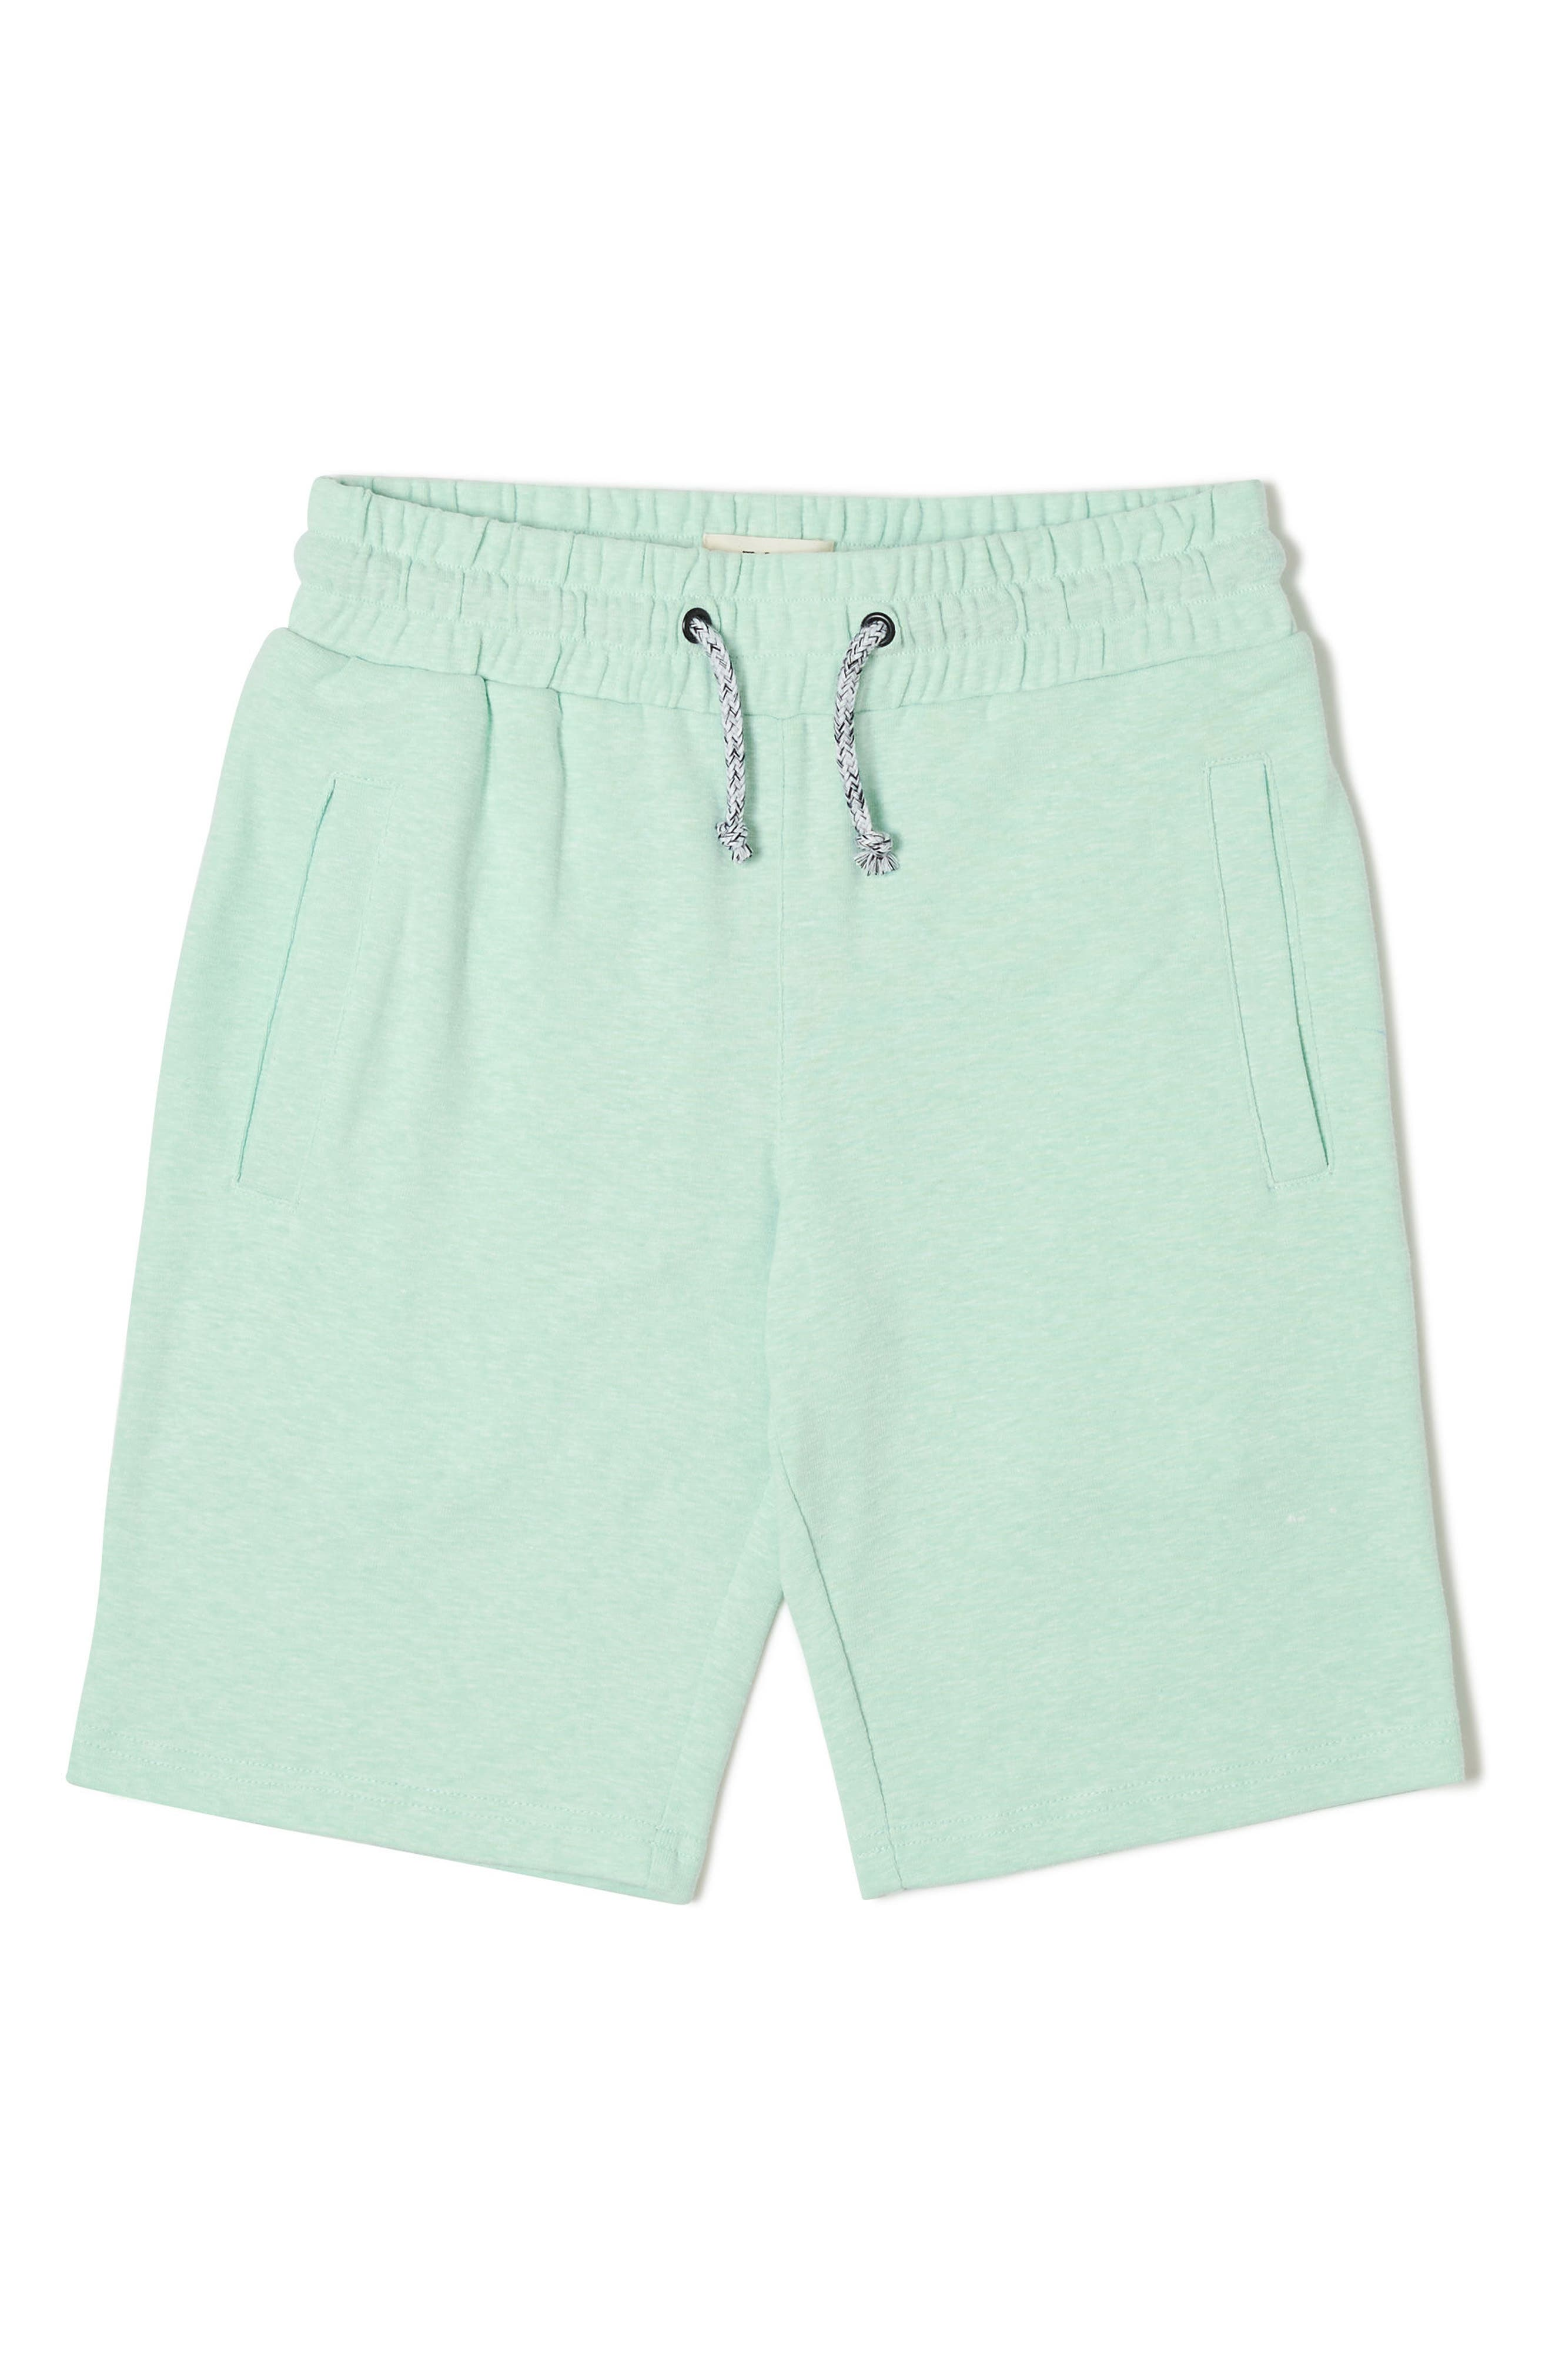 Ranger Knit Shorts,                         Main,                         color, Green